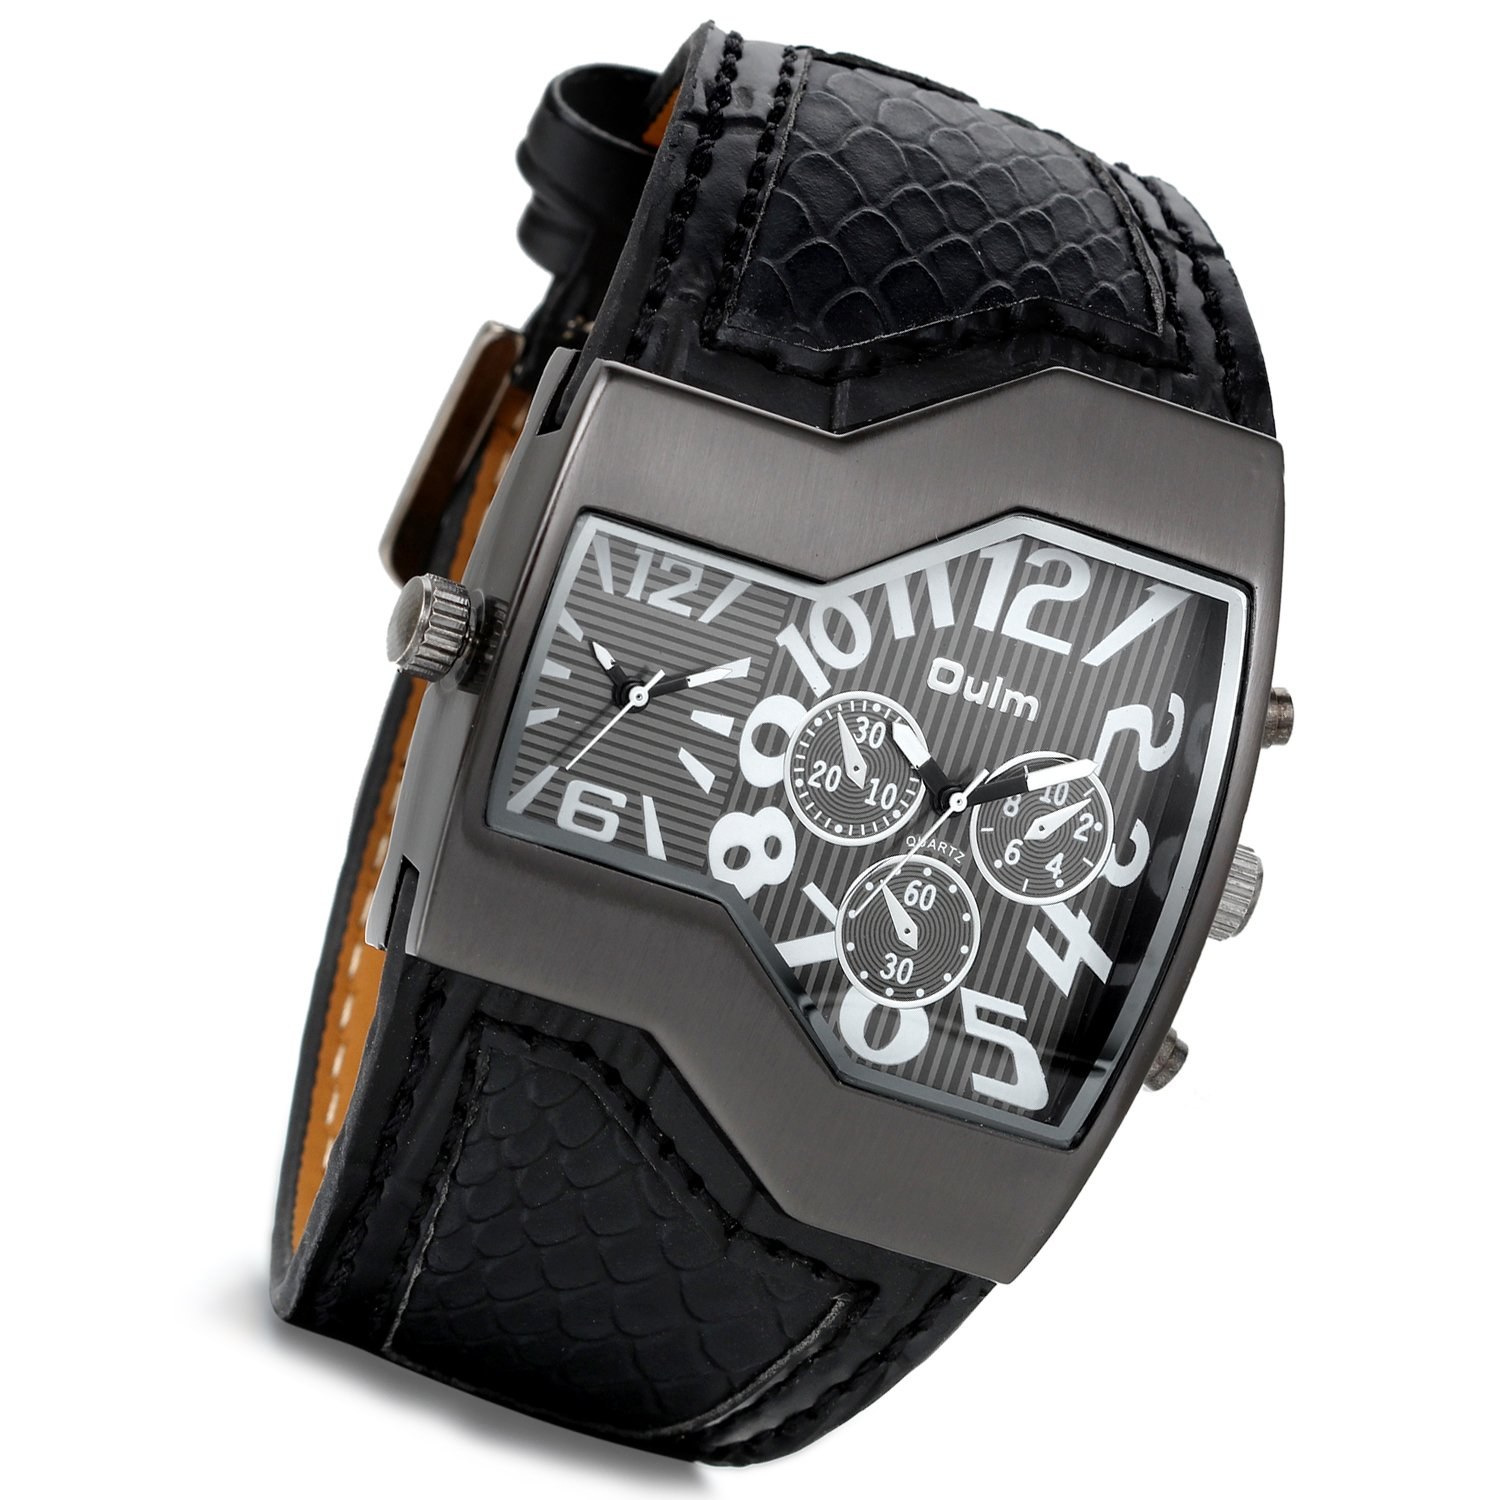 Amazon.com: Mens Military Oversize Big Face Rectangle Dual Timezone Black Leather Sports Watch with Japanese Movement: Watches